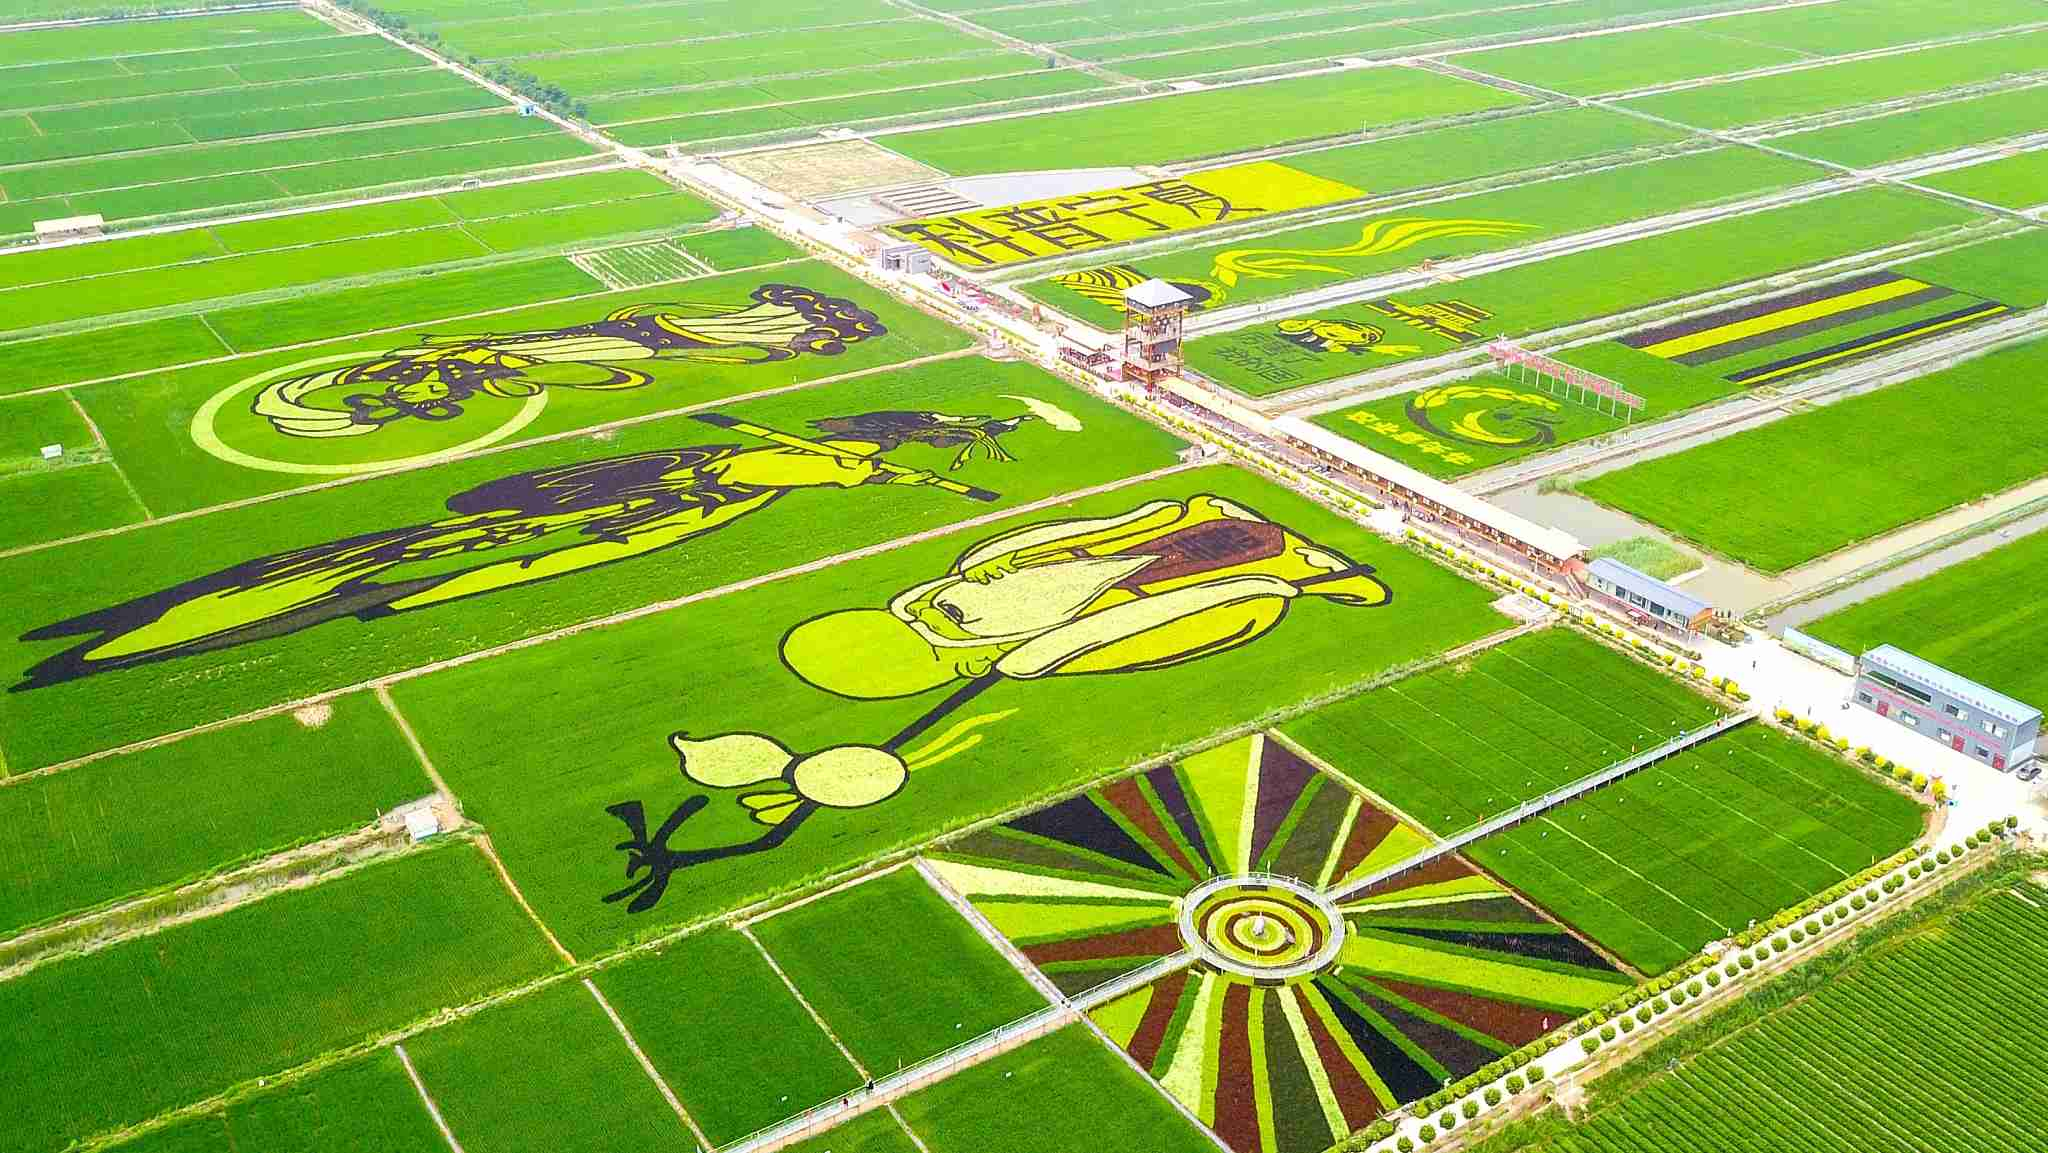 Paddy field paintings in Ningxia draw tourists